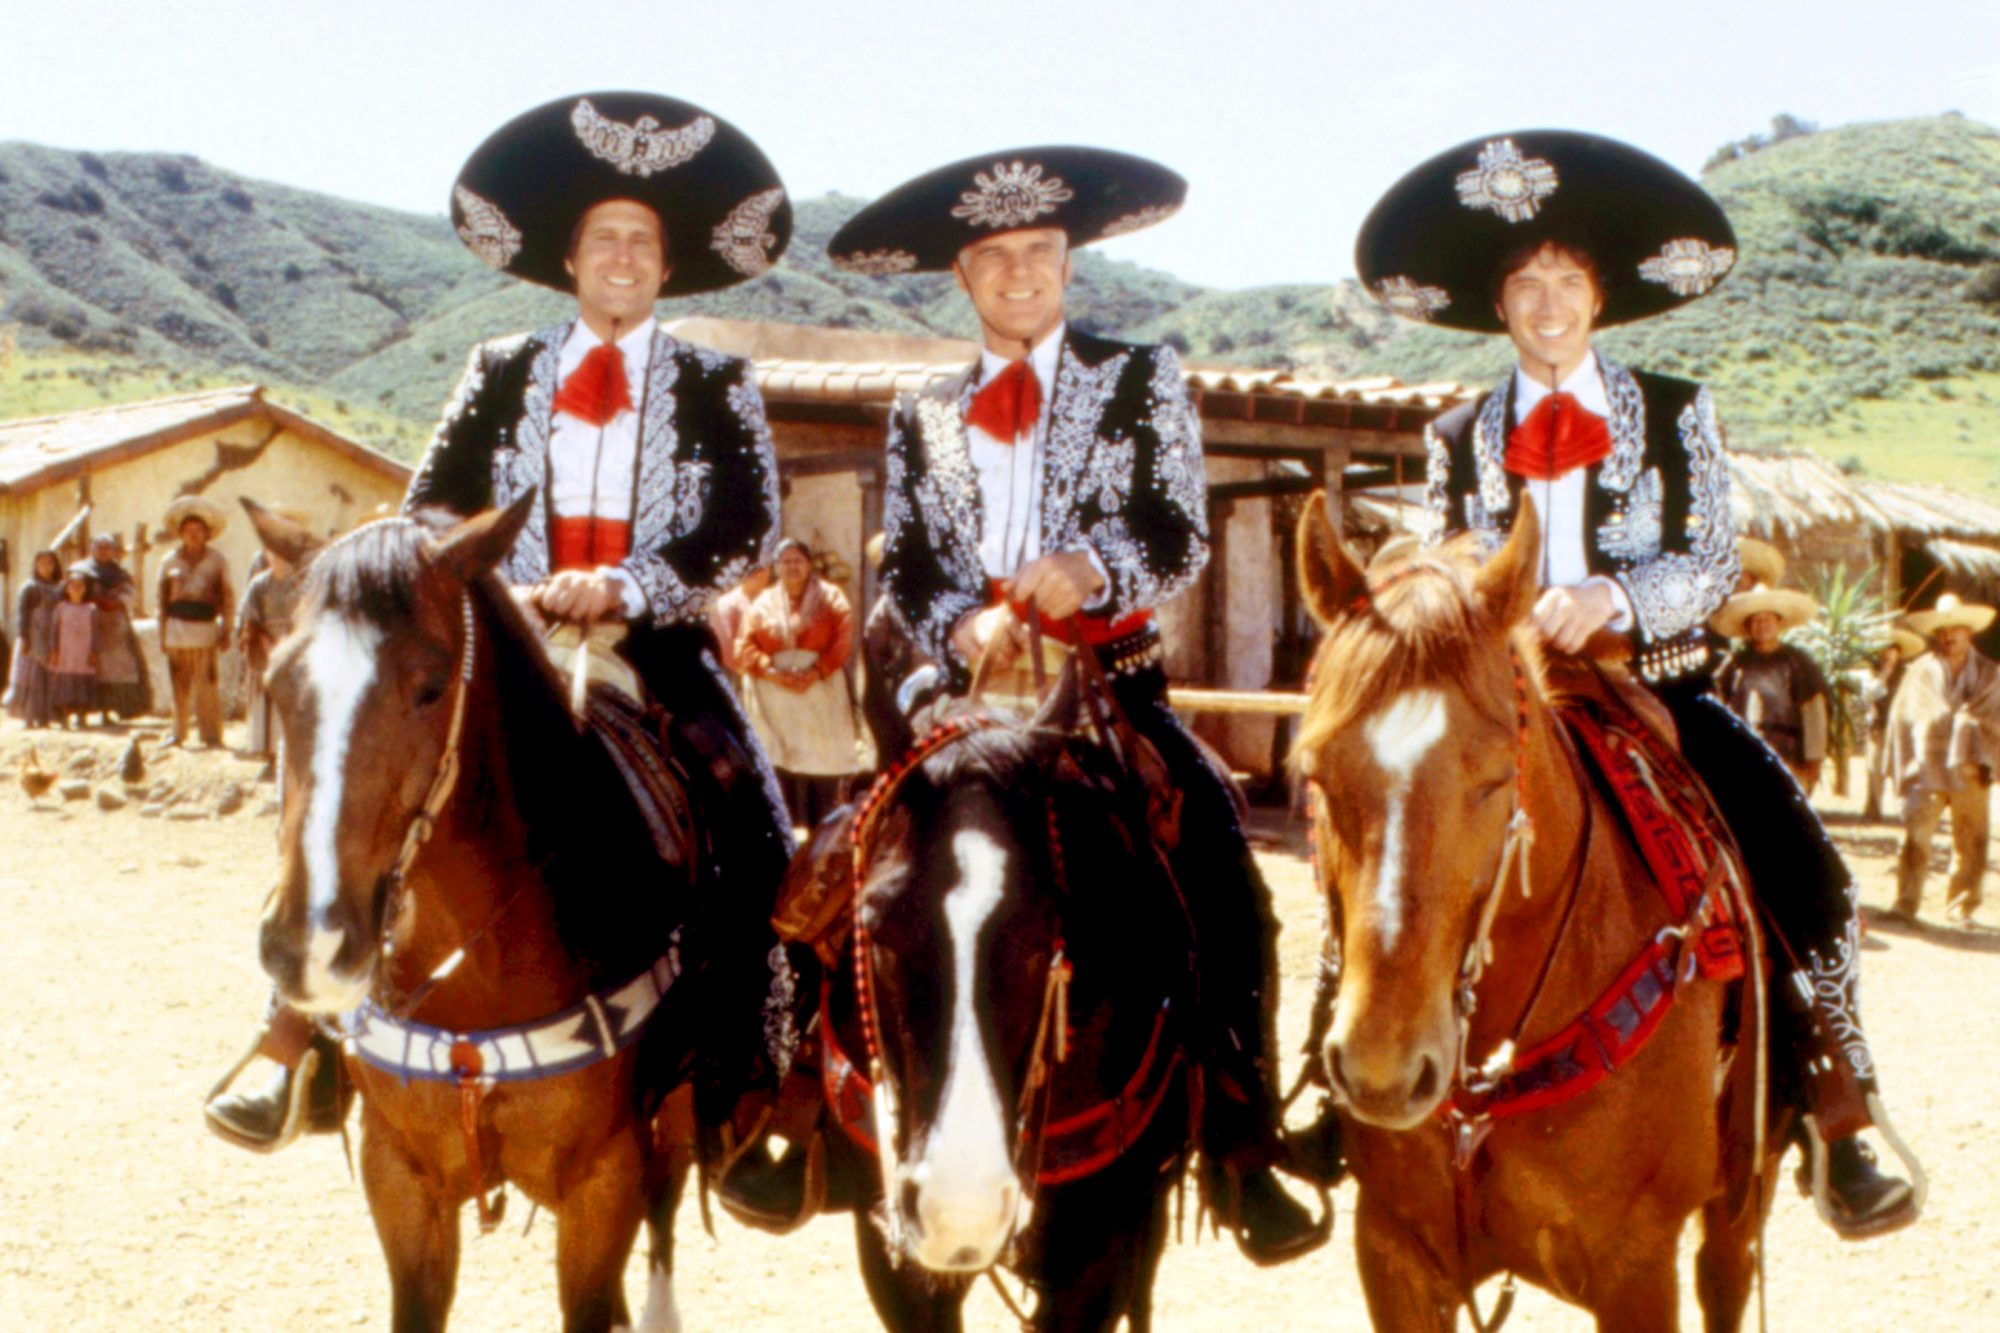 THREE AMIGOS, Chevy Chase, Steve Martin, Martin Short, 1986. (c)Orion Pictures/courtesy Everett Coll